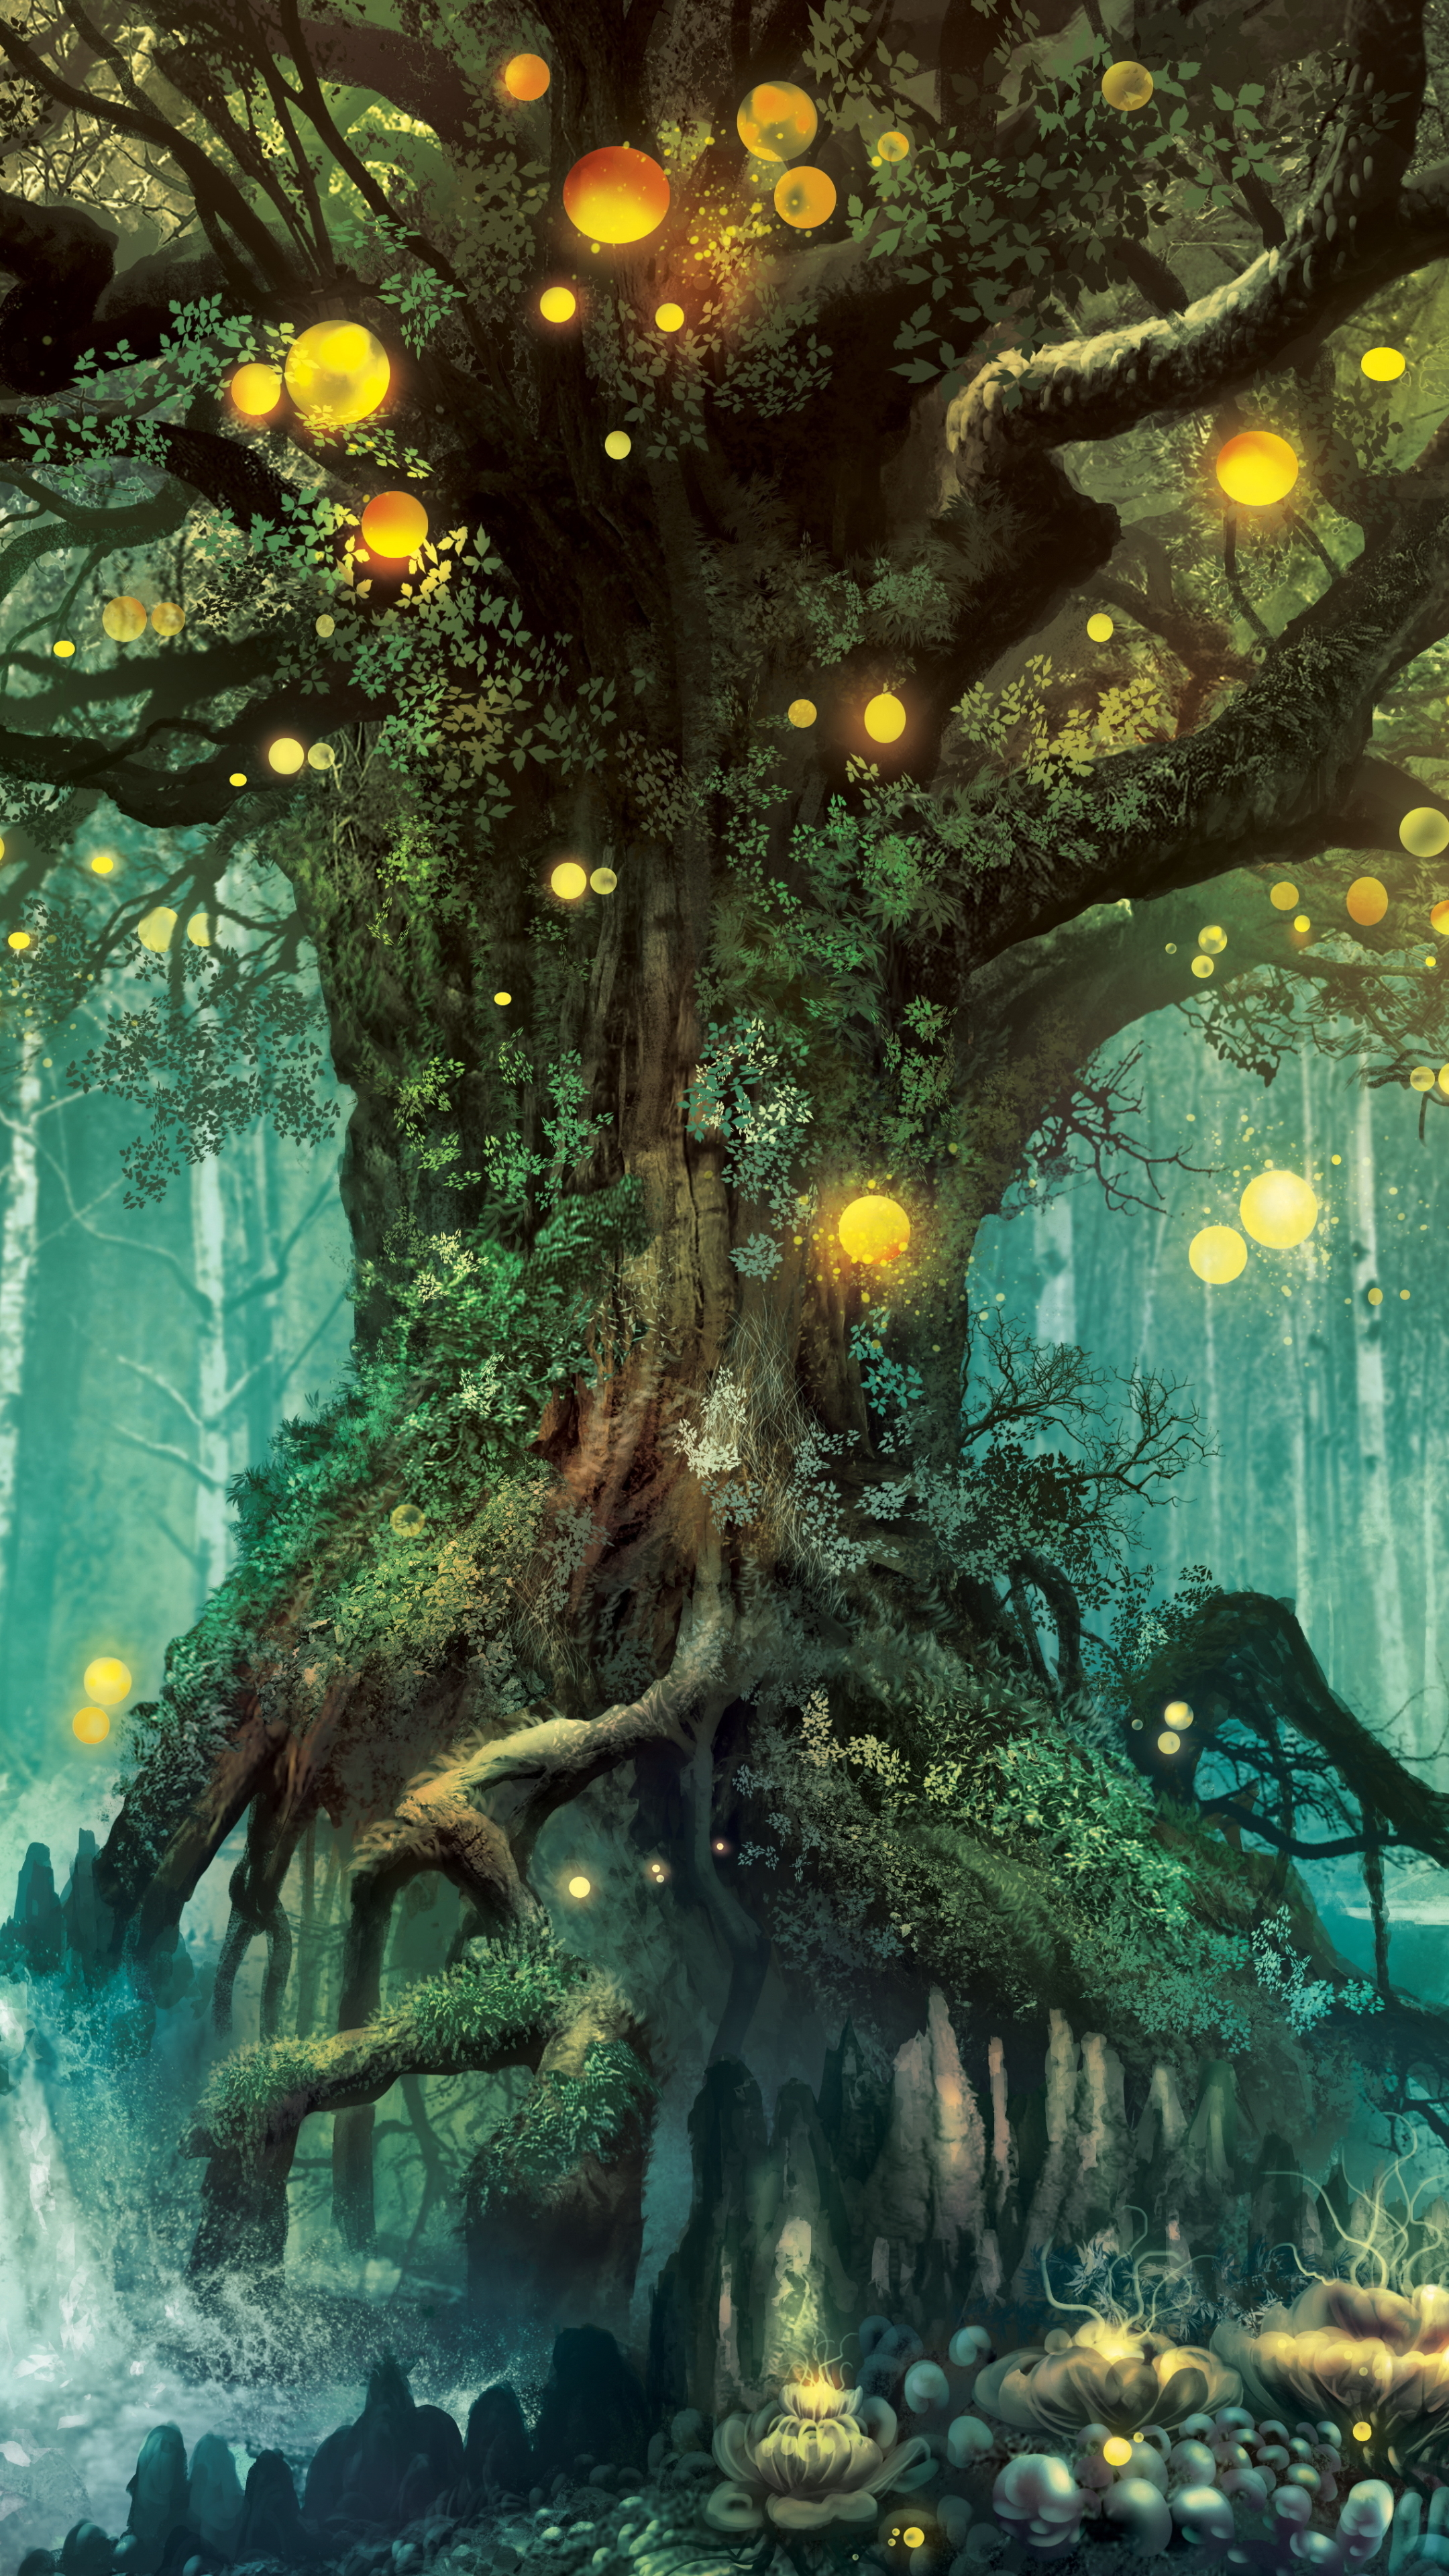 Fantasy Forest 1080x1920 Wallpaper Id 696788 Mobile Abyss